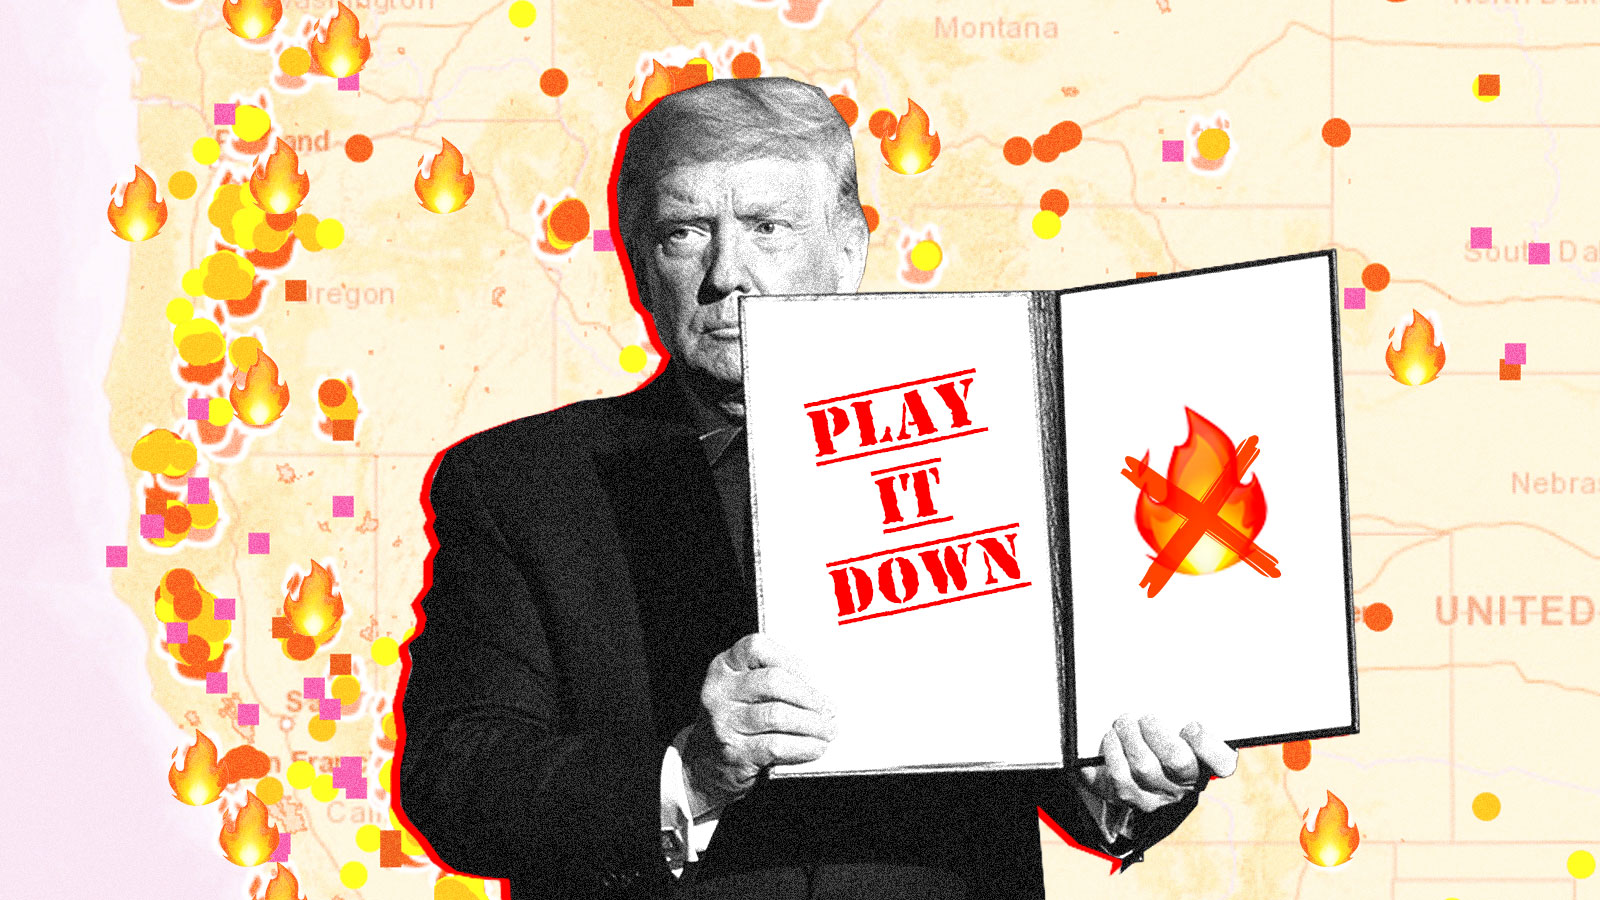 Illustration Donald Trump play it down wildfires